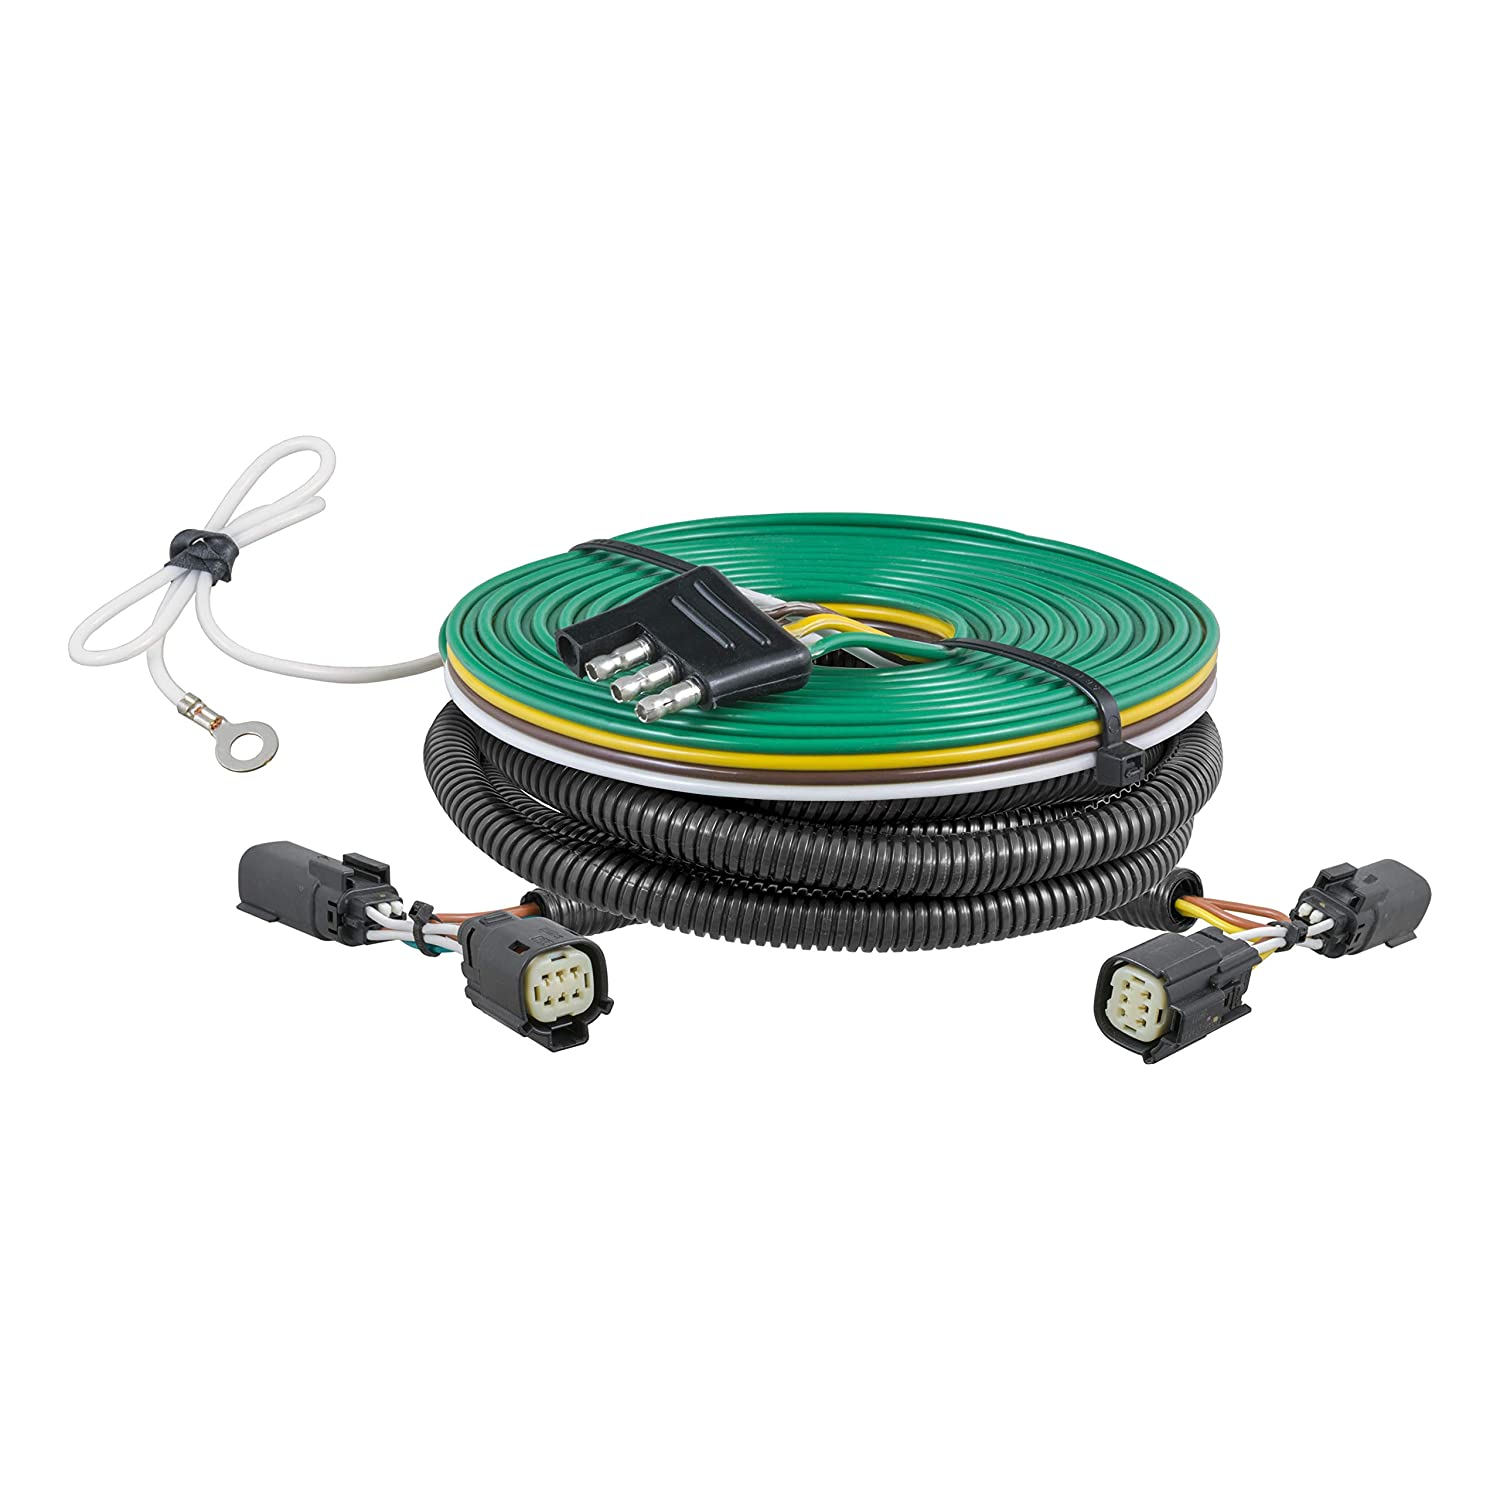 CURT 58910 Custom Towed-Vehicle RV Wiring Harness for Dinghy Towing Select Chevrolet Colorado GMC Canyon